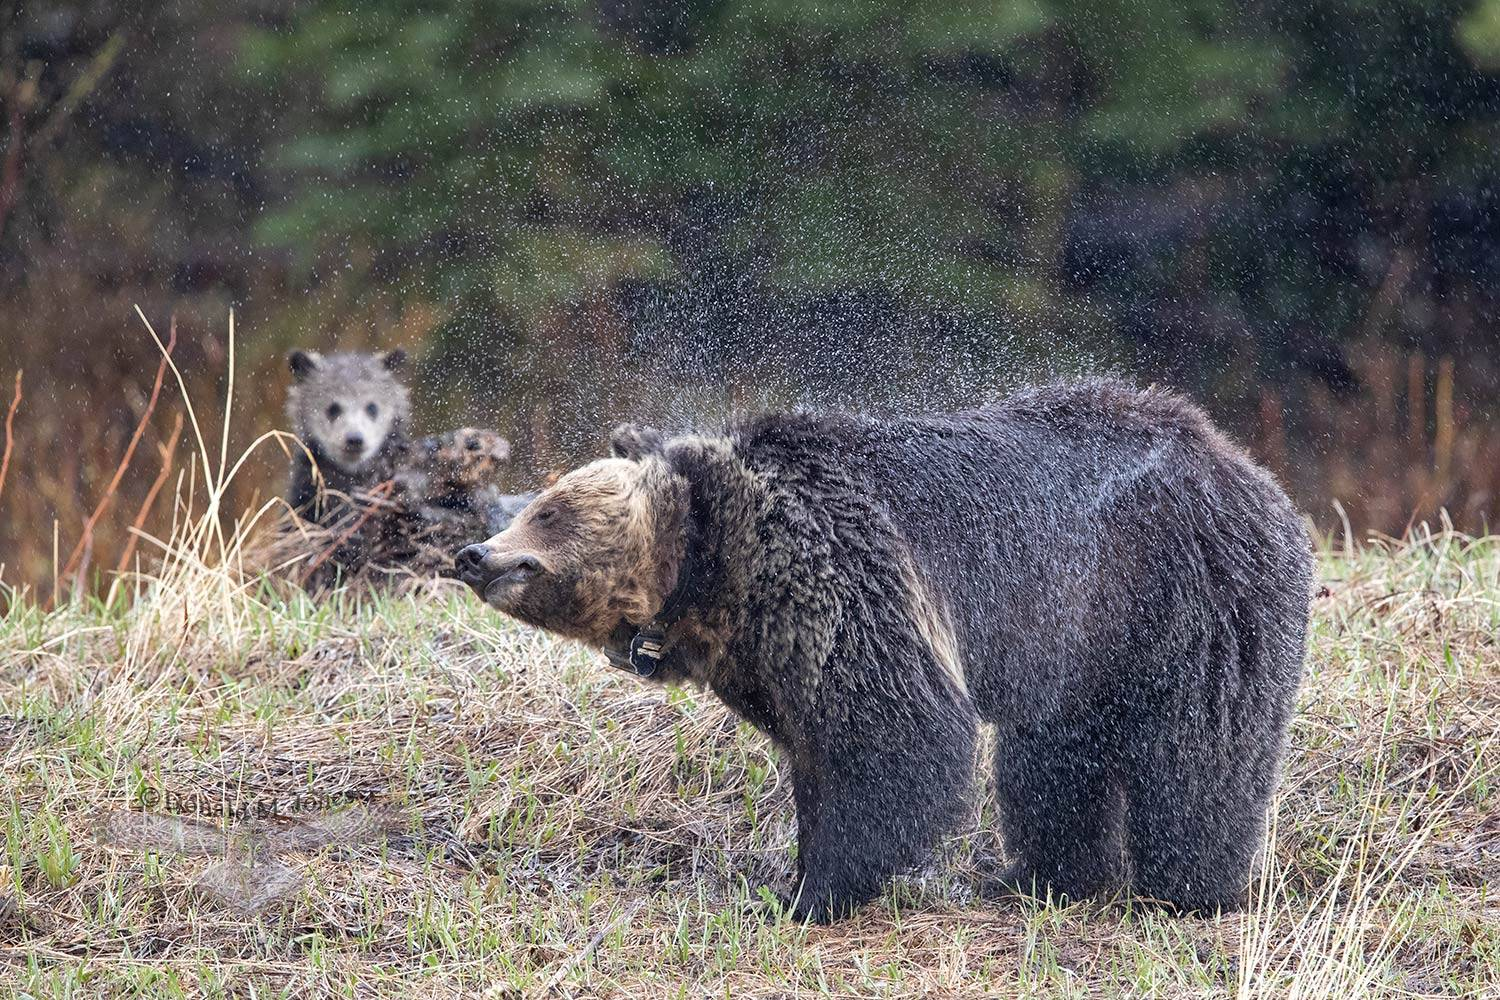 May 23  Female Grizzly shaking during a rainstorm - she is wearing a radio collar